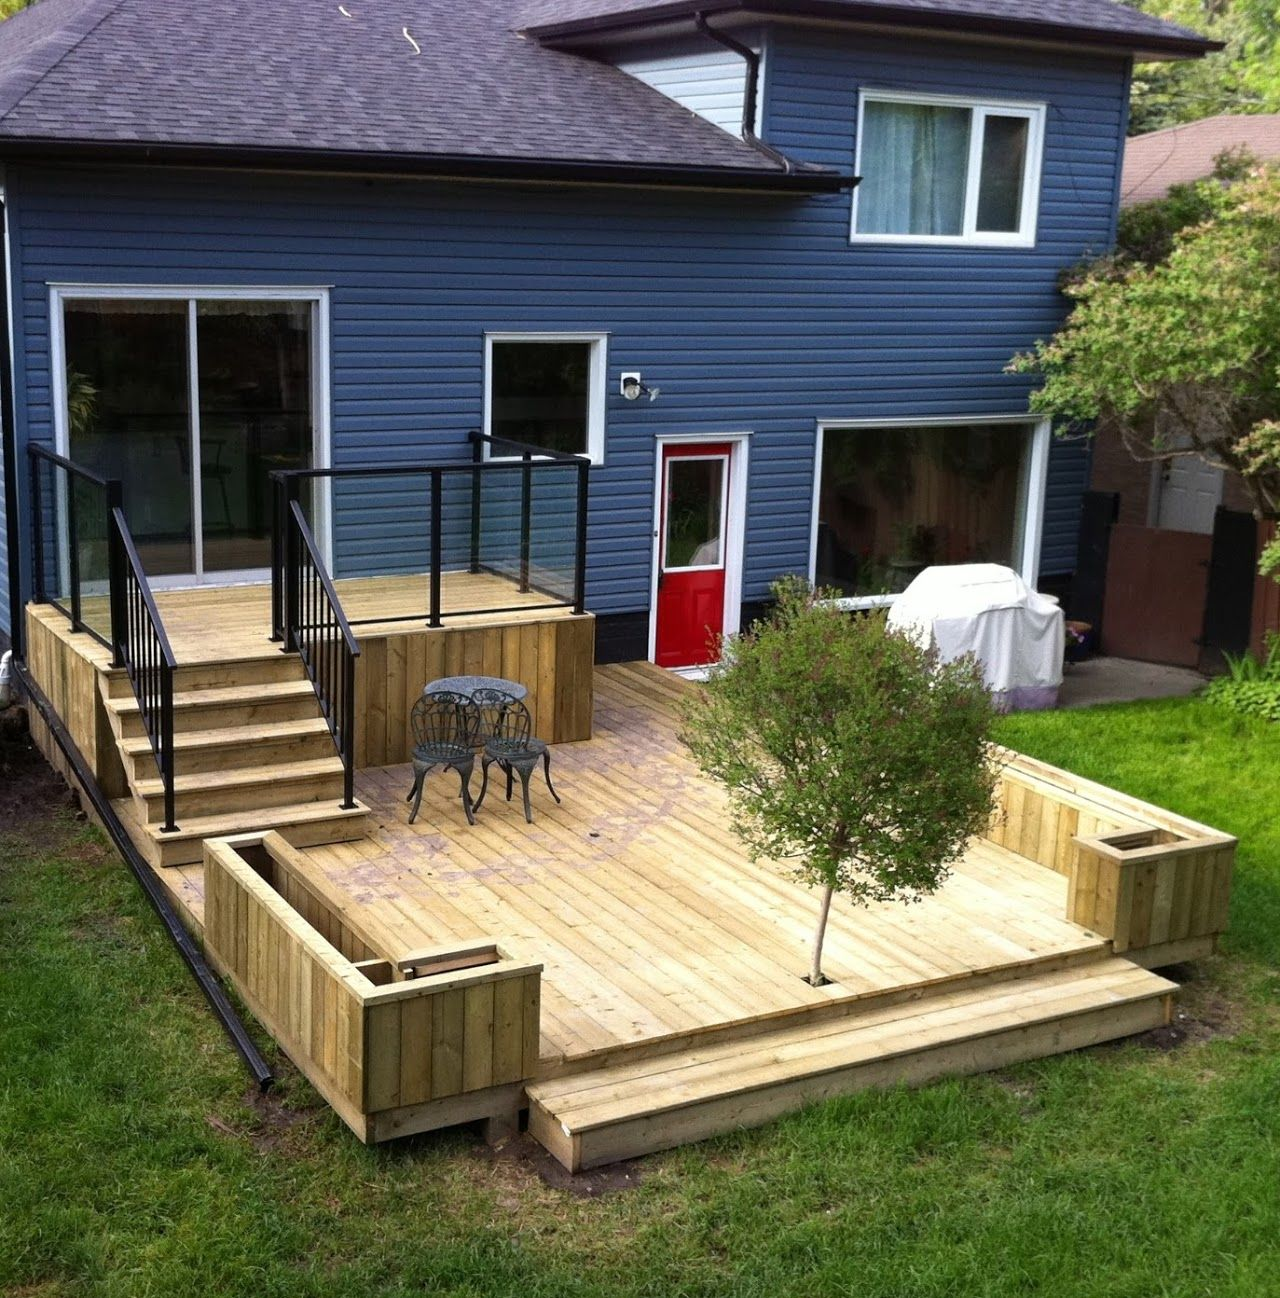 Diy Deck Plans Step By Step Small Deck Plans: Back Steps- Have The Small Porch But Then A Brick Patio